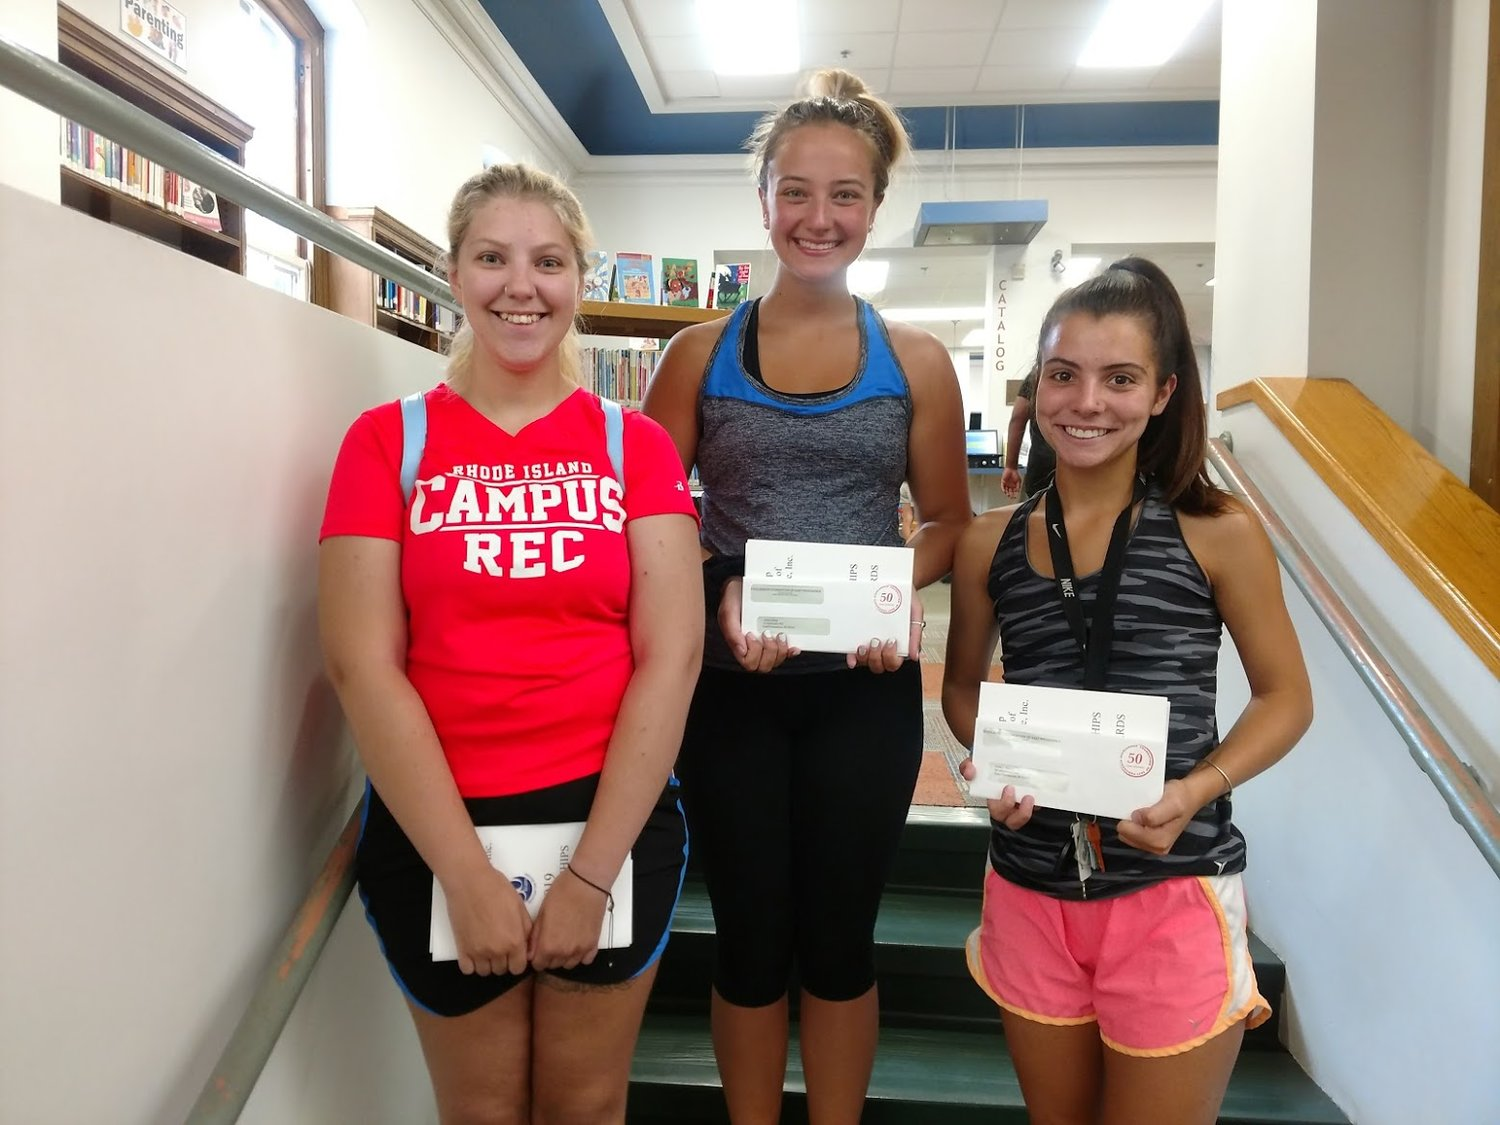 Recipients of scholarships administered by Scholarship Foundation of East Providence this year include, left to right, Emma Anderson, Alison Batty and Kiley Bahry.